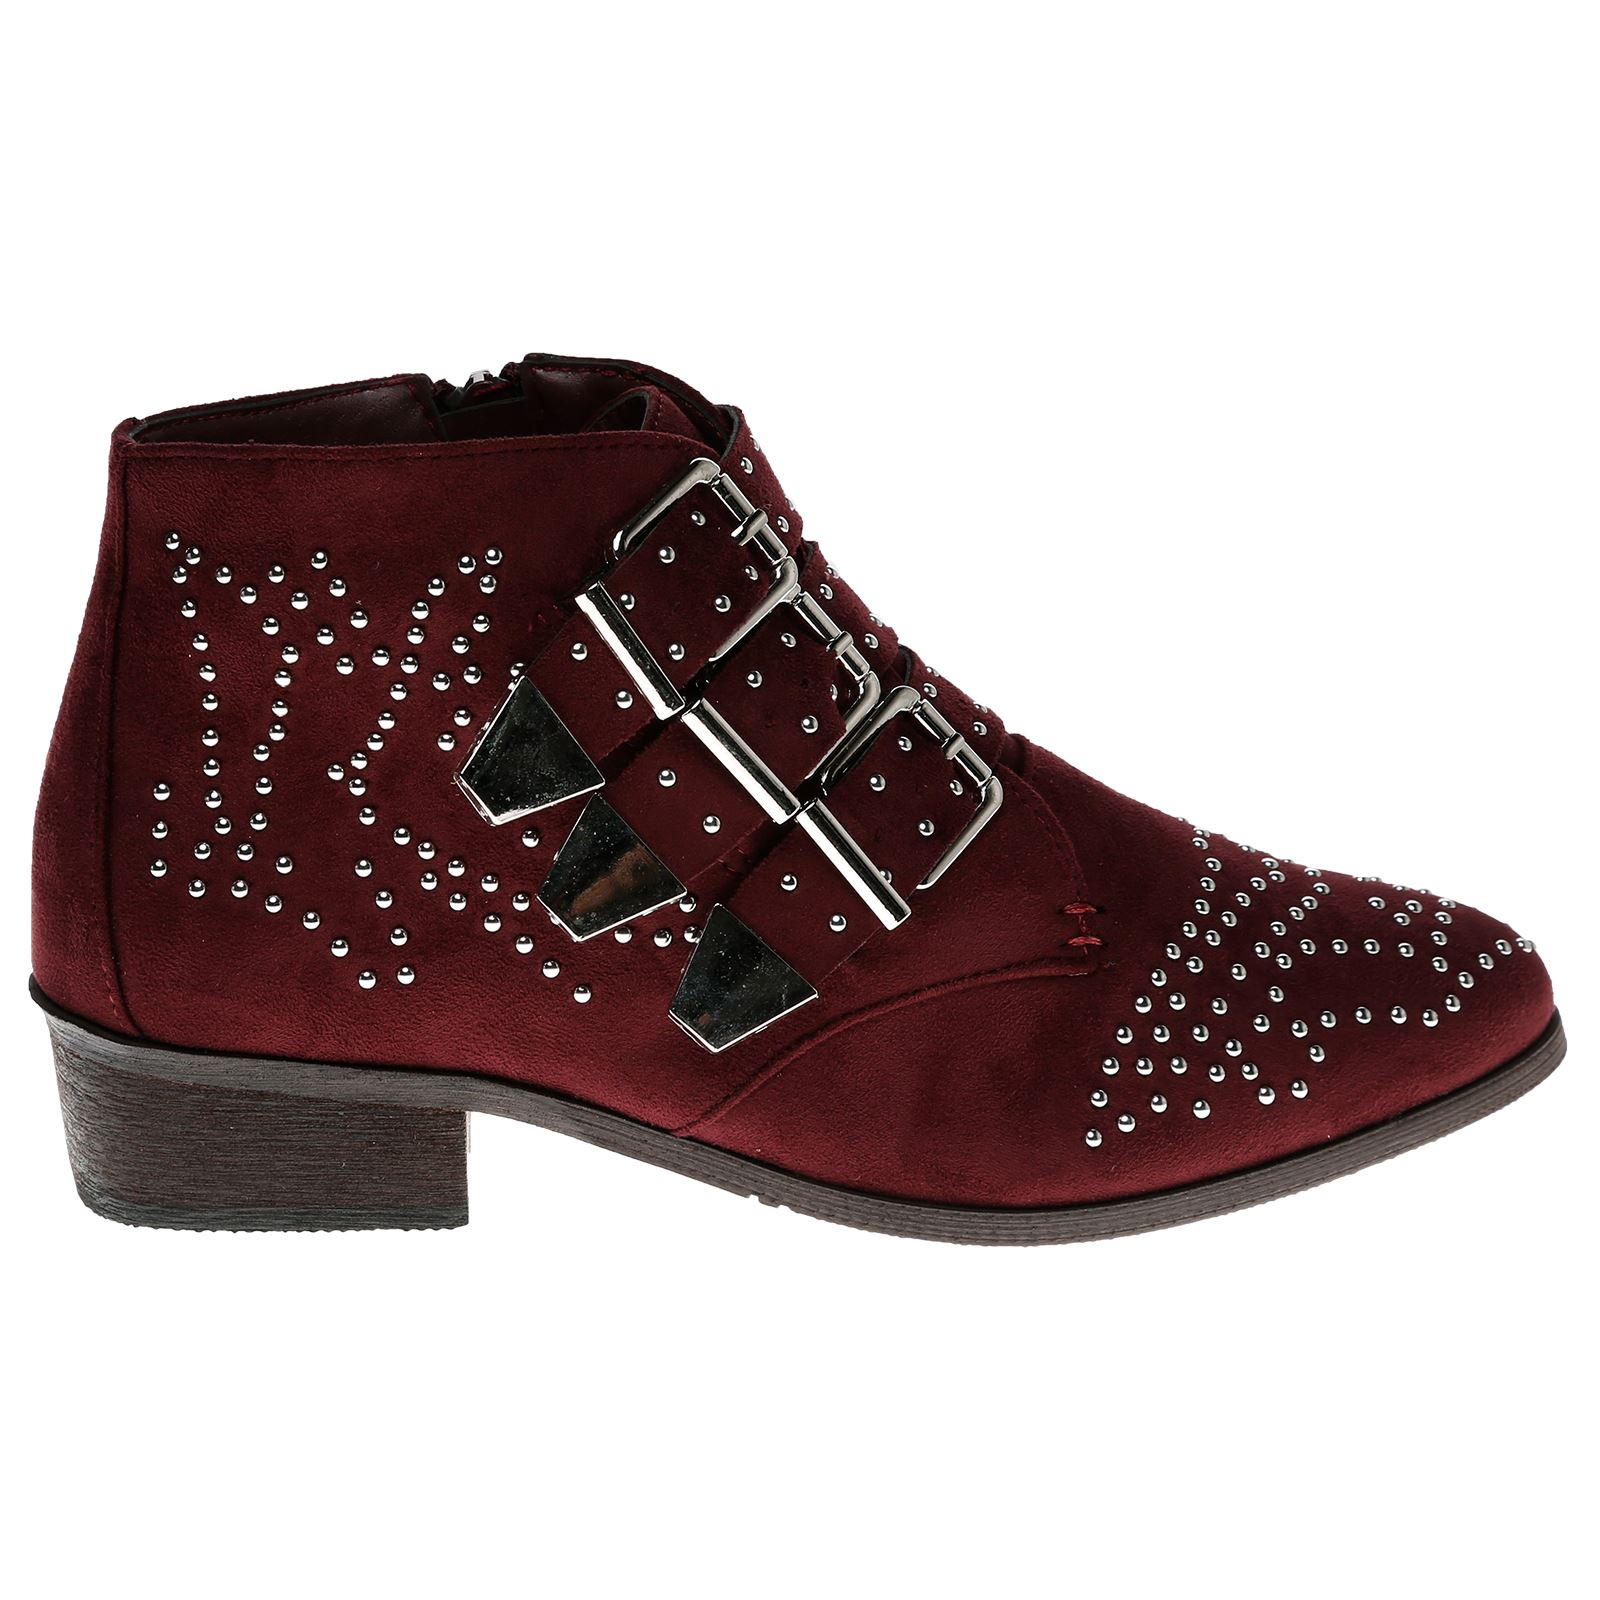 Liv-Womens-Flats-Low-Heels-Buckle-Strappy-Biker-Ankle-Boots-Ladies-Shoes-Studded thumbnail 31